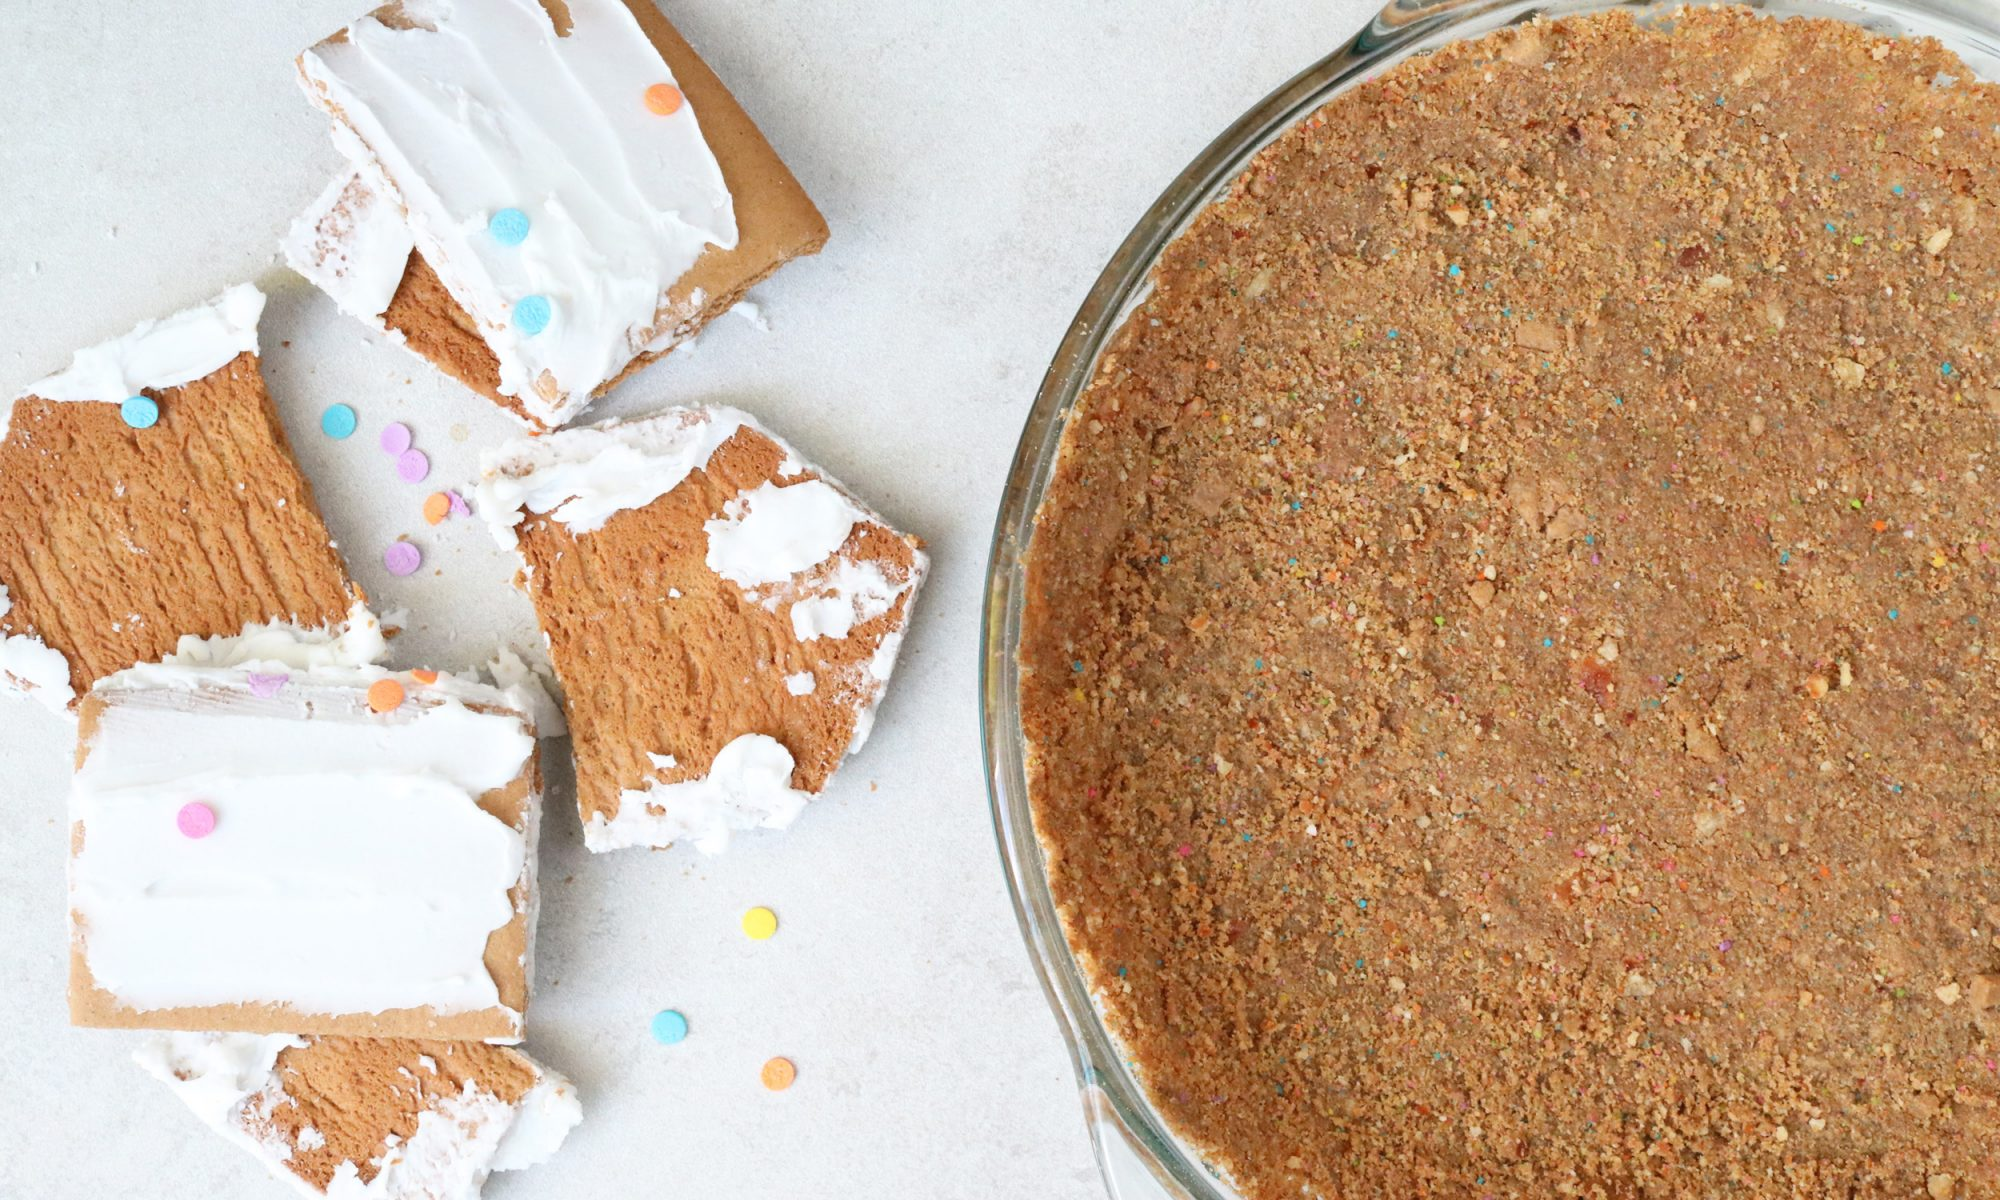 EC: Turn a Gingerbread House into a Crazy-Good Pie Crust